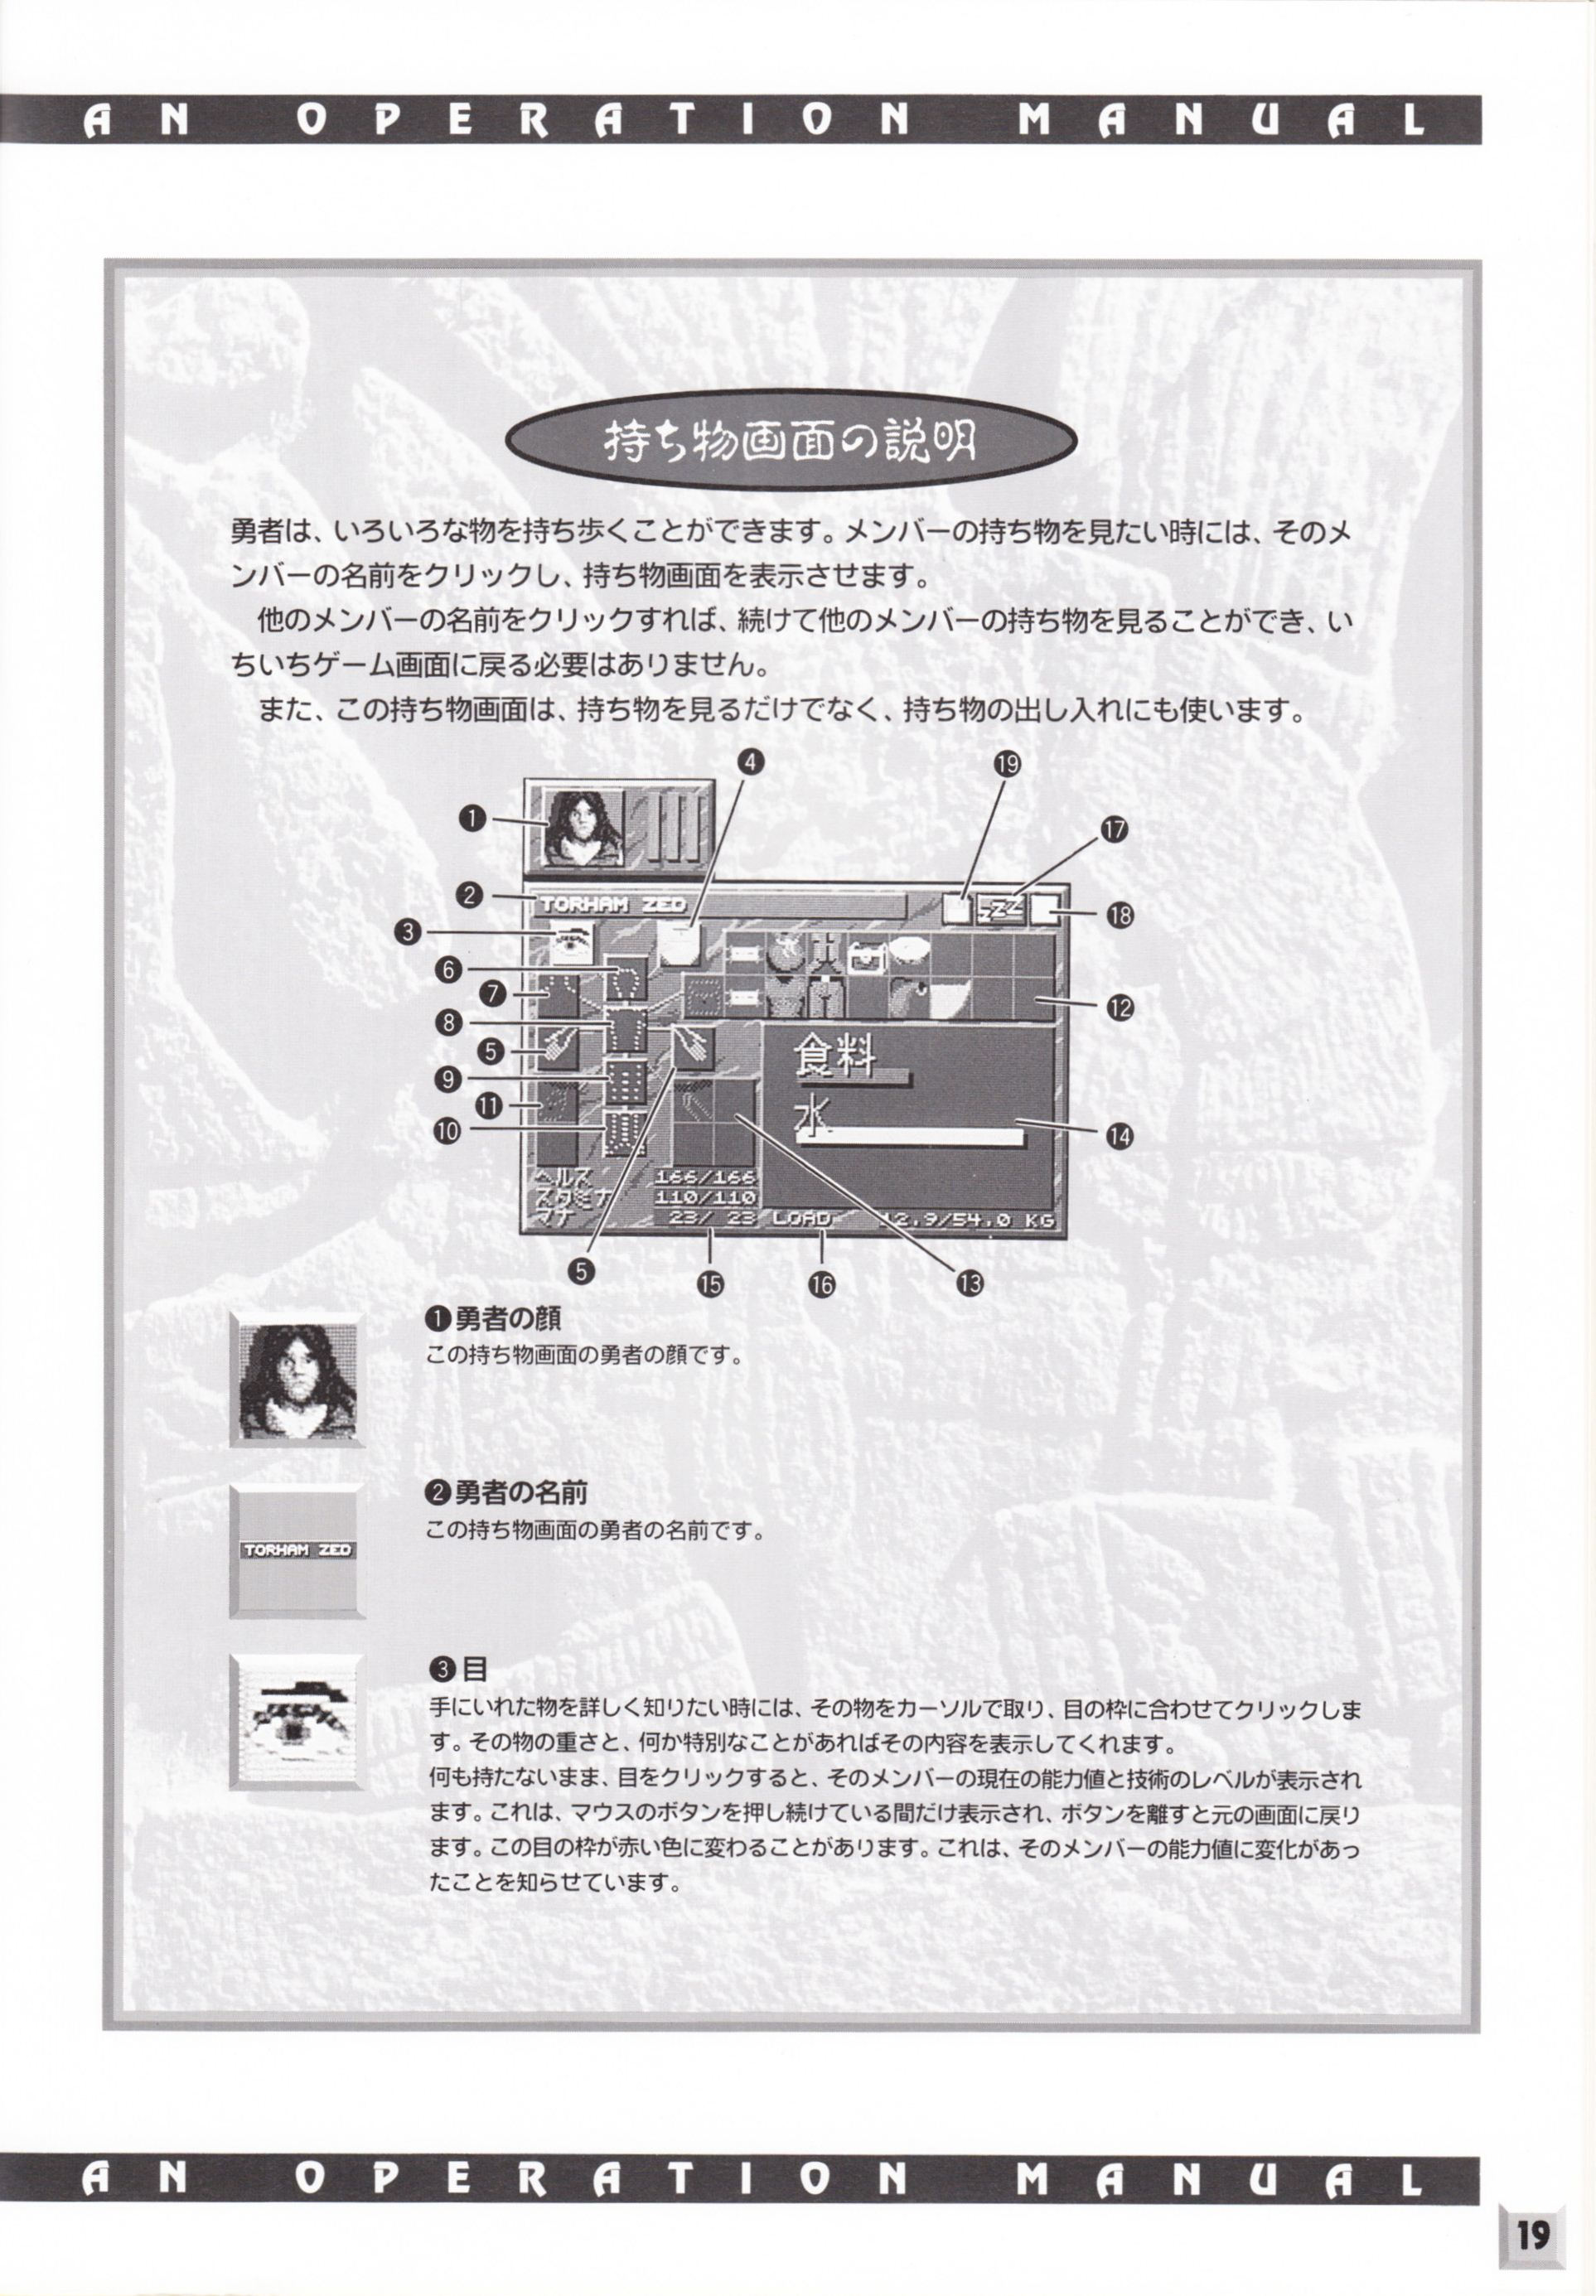 Game - Dungeon Master II - JP - PC-9801 - 3.5-inch - An Operation Manual - Page 021 - Scan